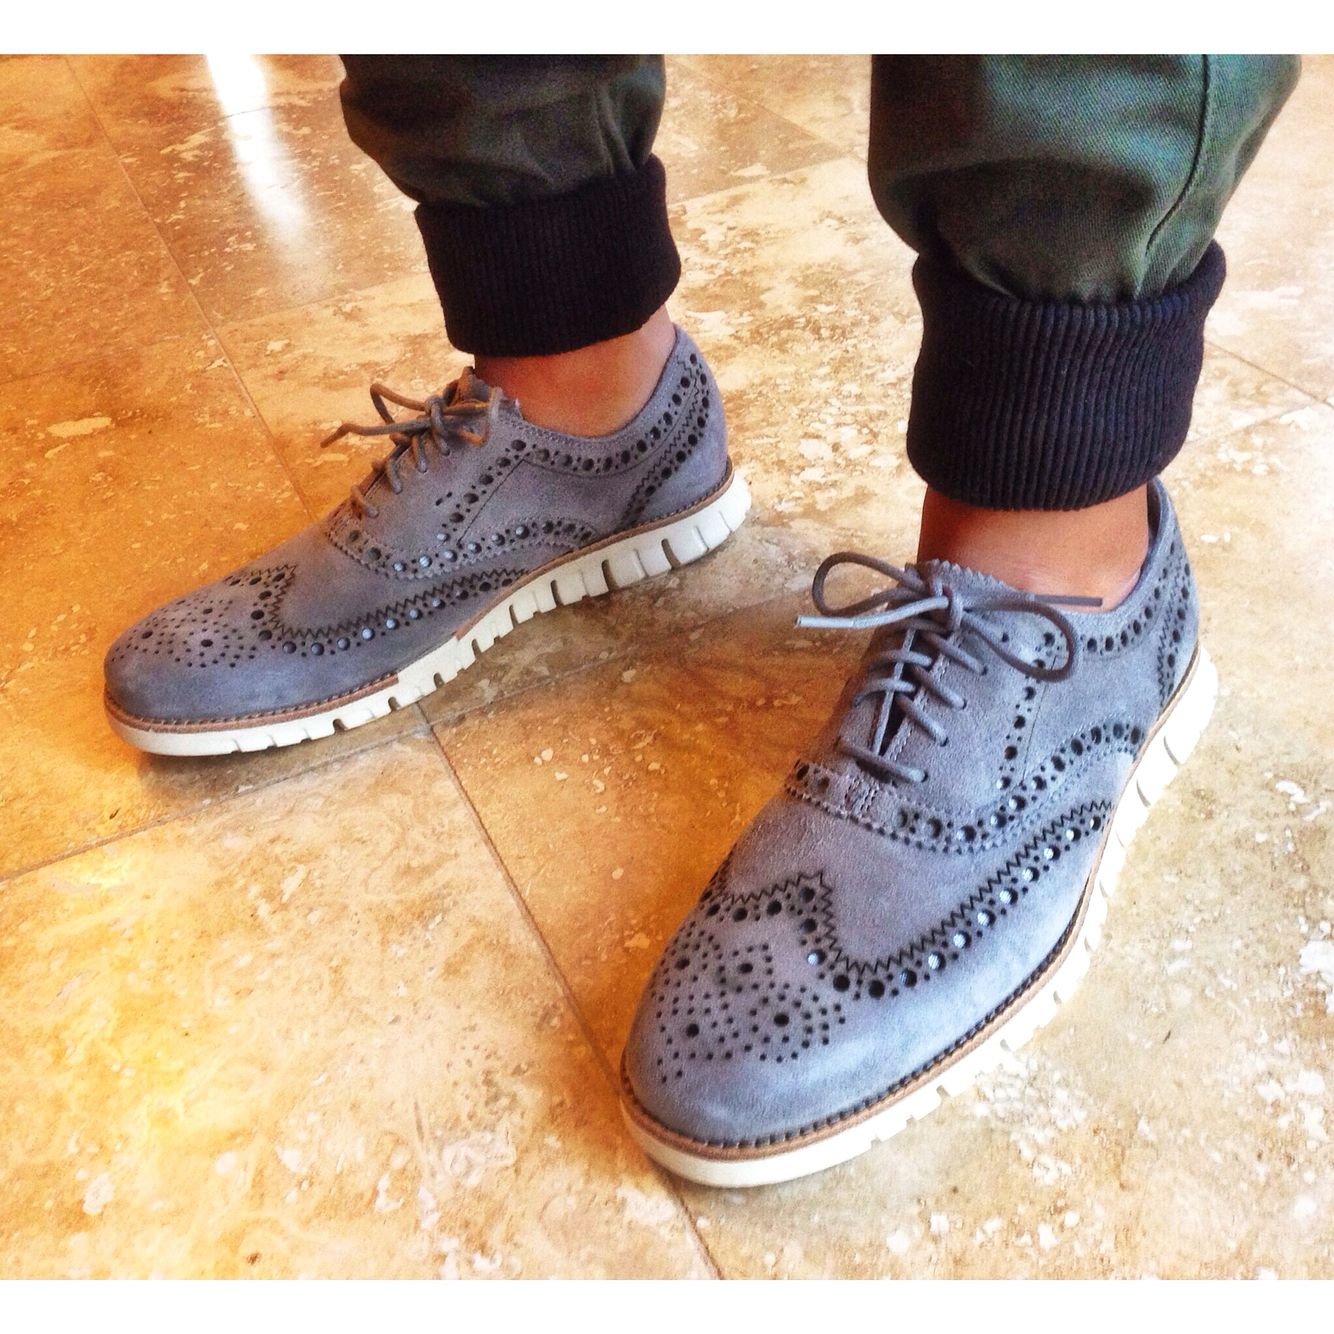 7a3710dc941c men s cole haan zero grand wingtips in ironstone grey. flash hype olive  joggers